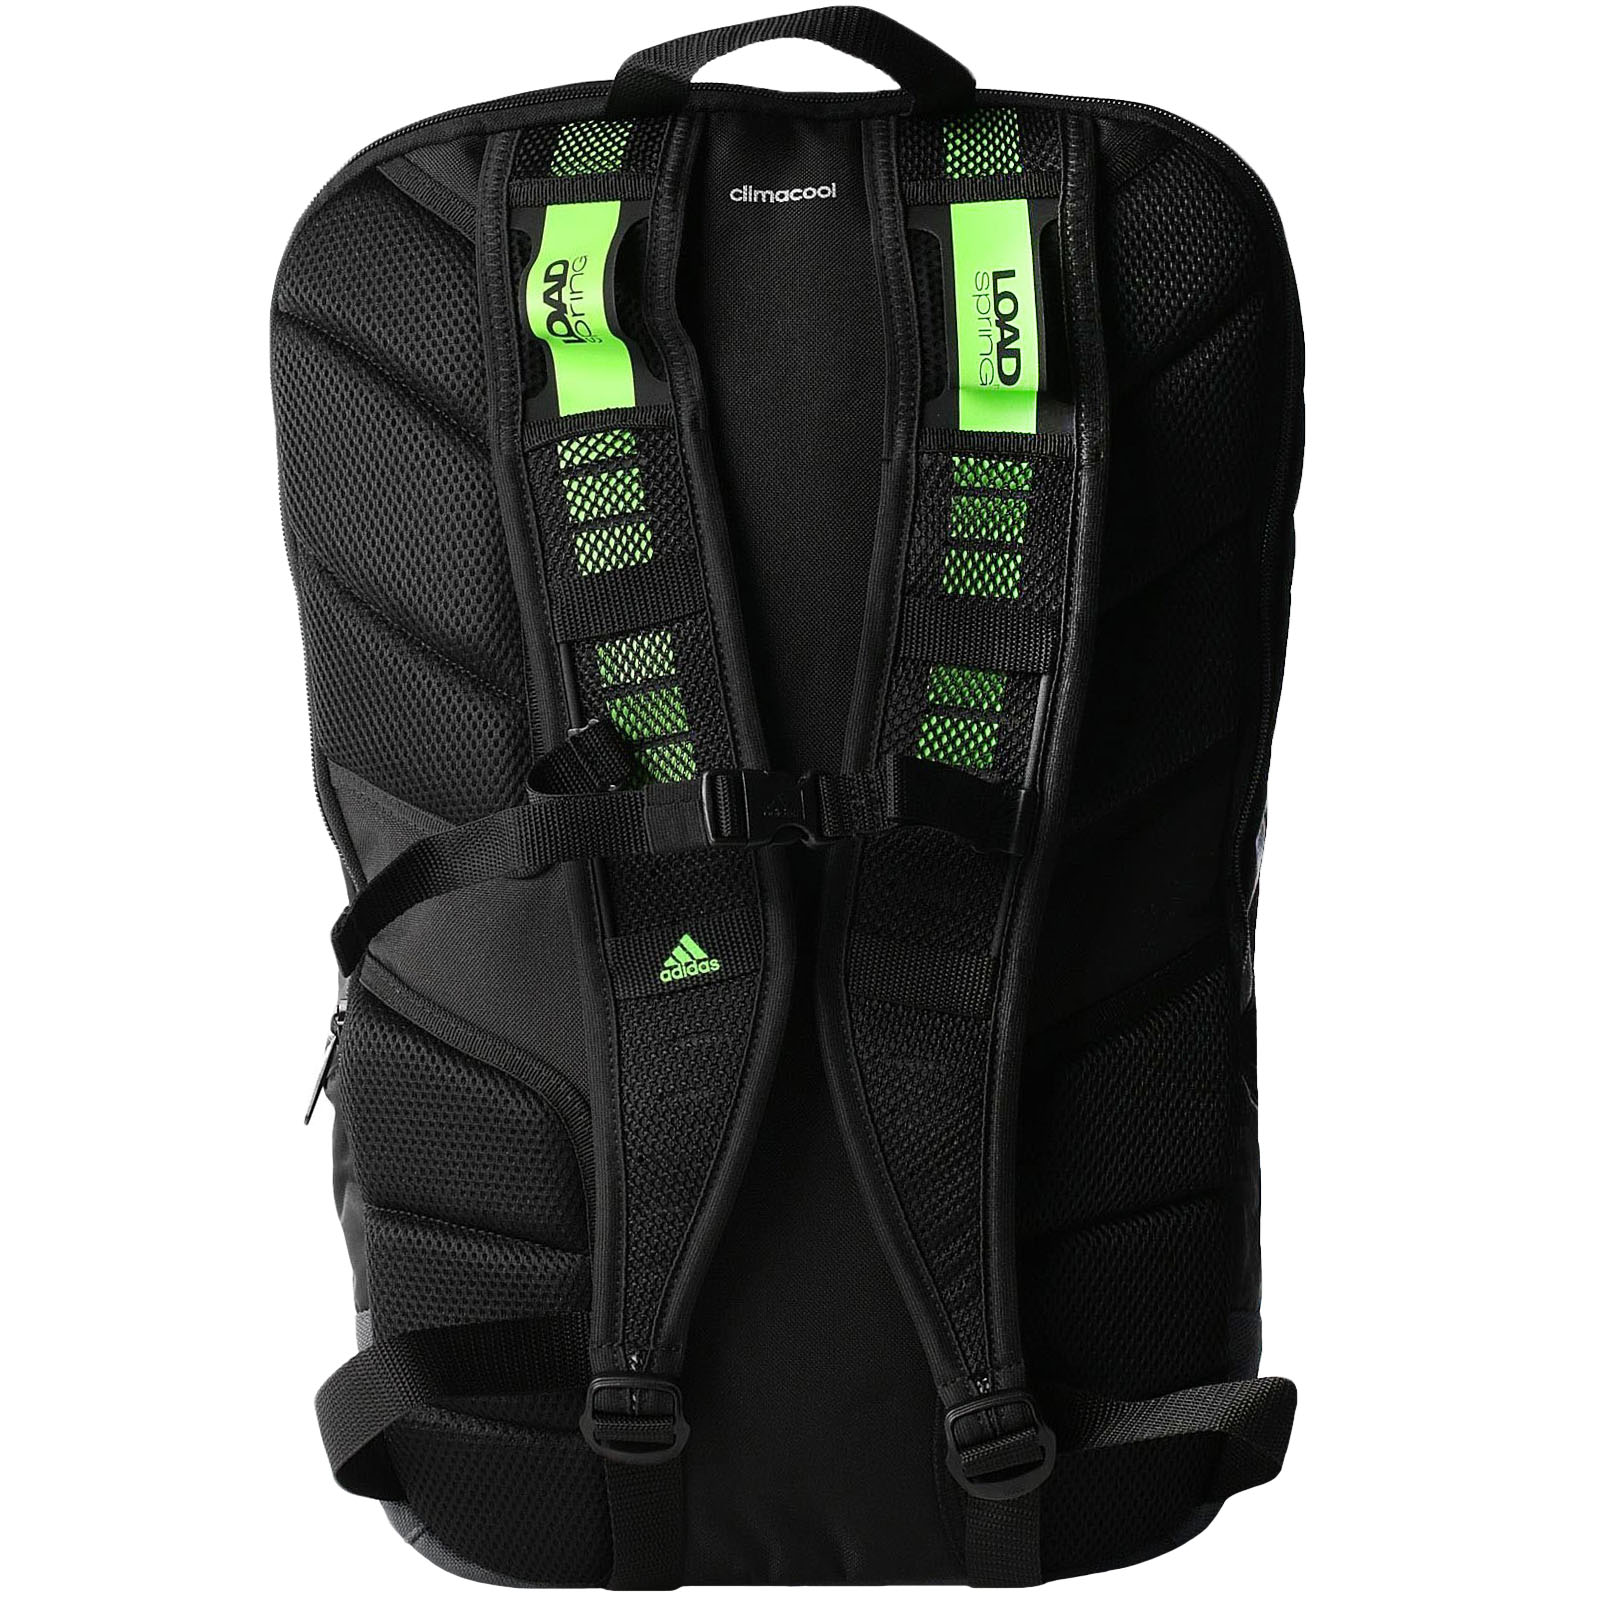 7e6a4ebe94e9 adidas Performance Mens Nitrocharge 1.0 Two Strap Backpack Rucksack ...